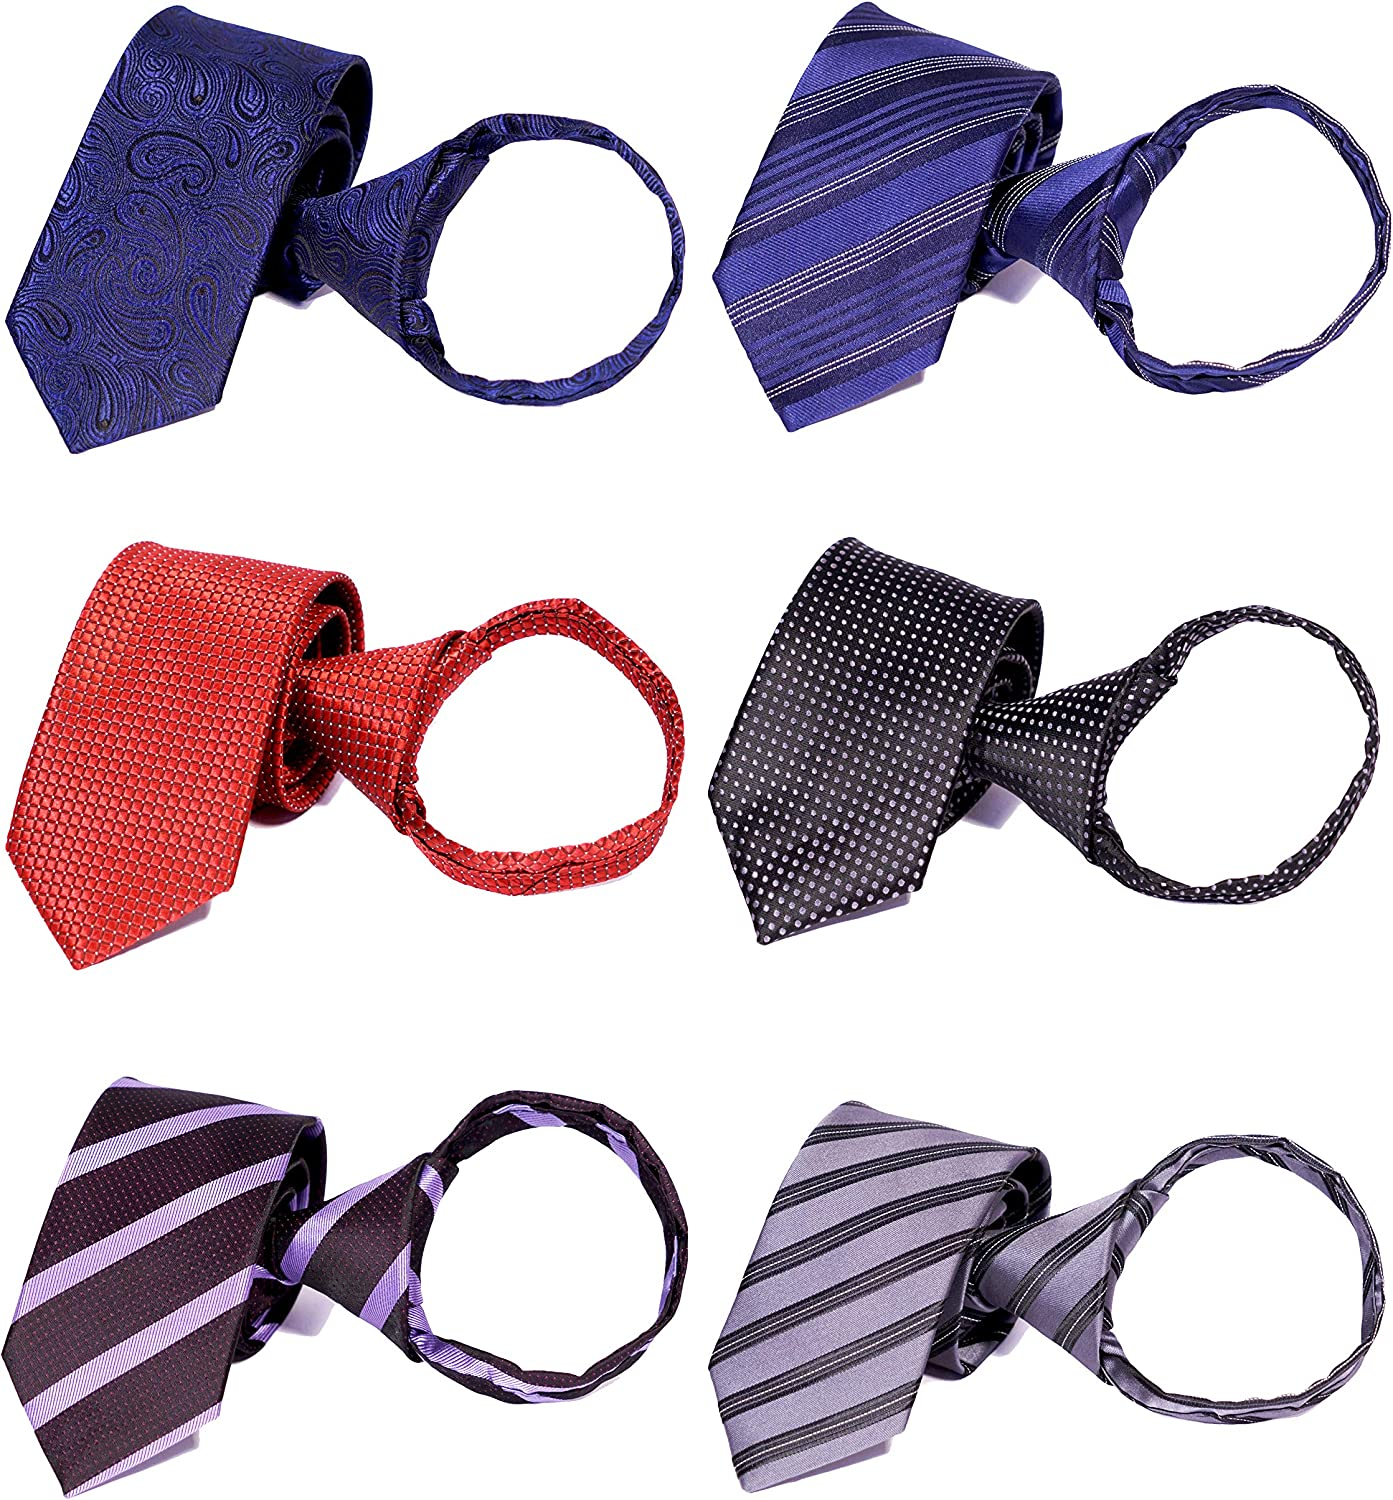 Tiger Mama 6pcs Zipper Skinny Tie Pre-tied Business Skinny Necktie Mixed Lot